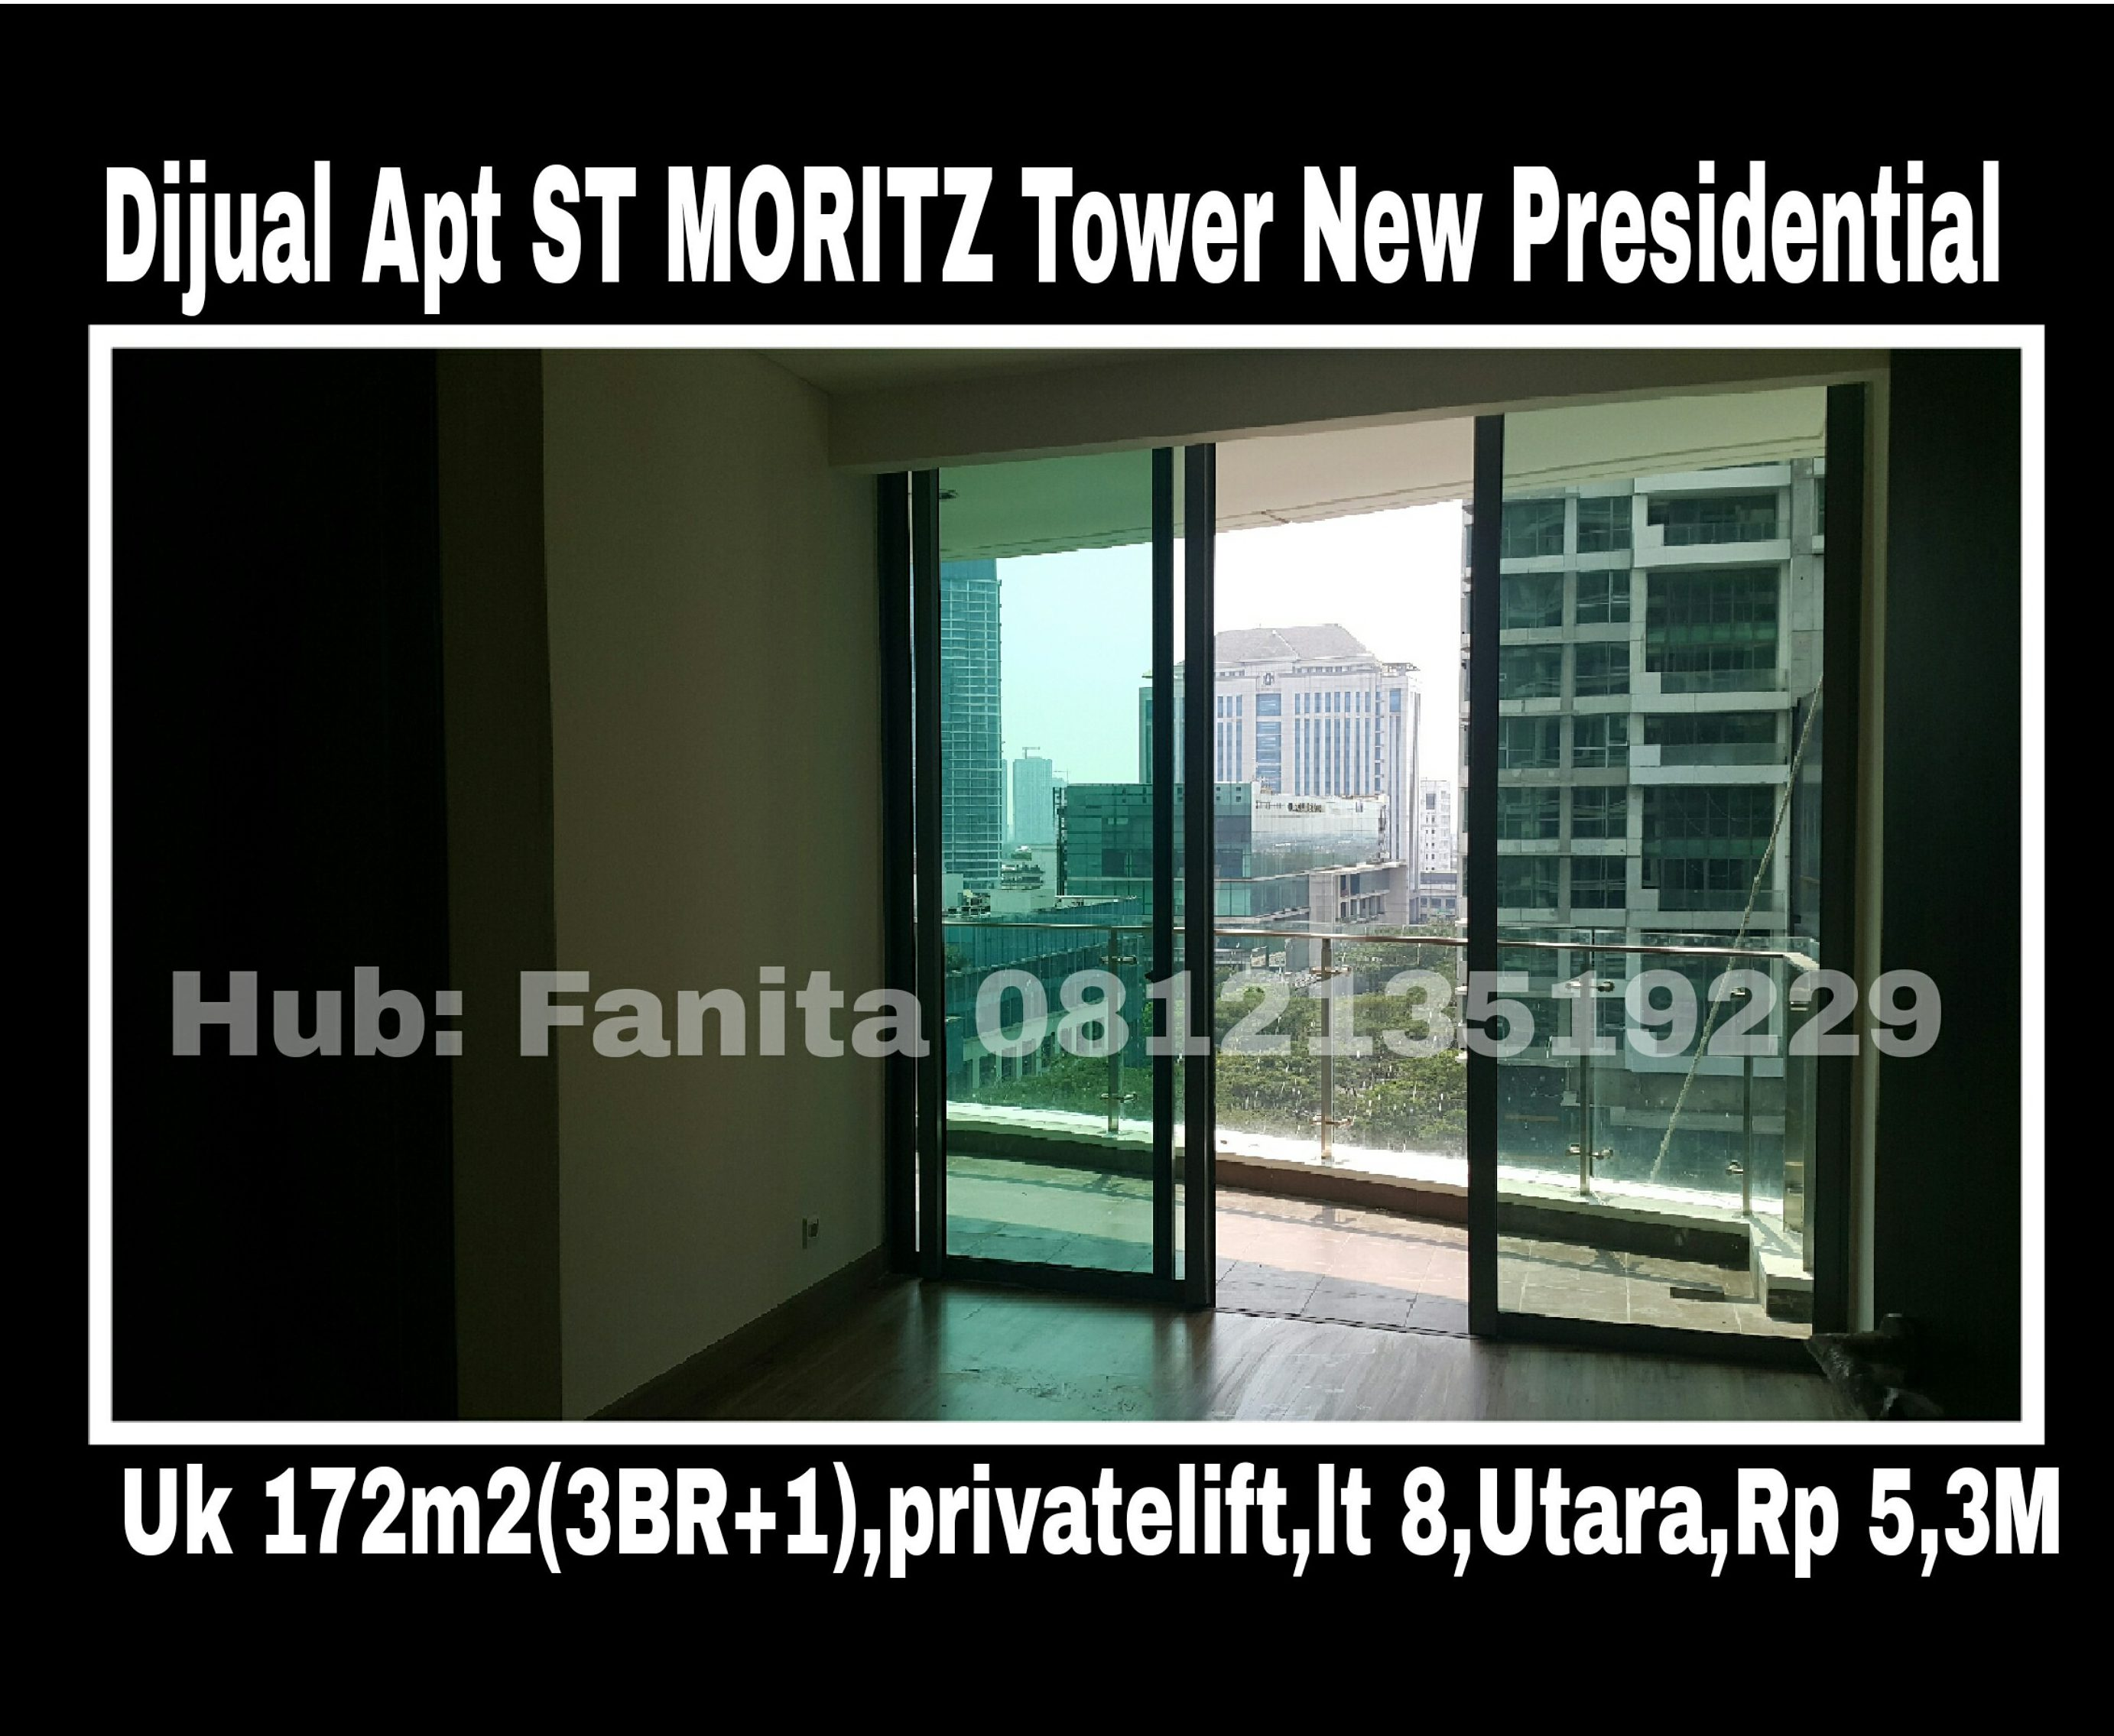 Apt ST MORITZ Tower Terbaru New Presidential Uk 172m2 di ...